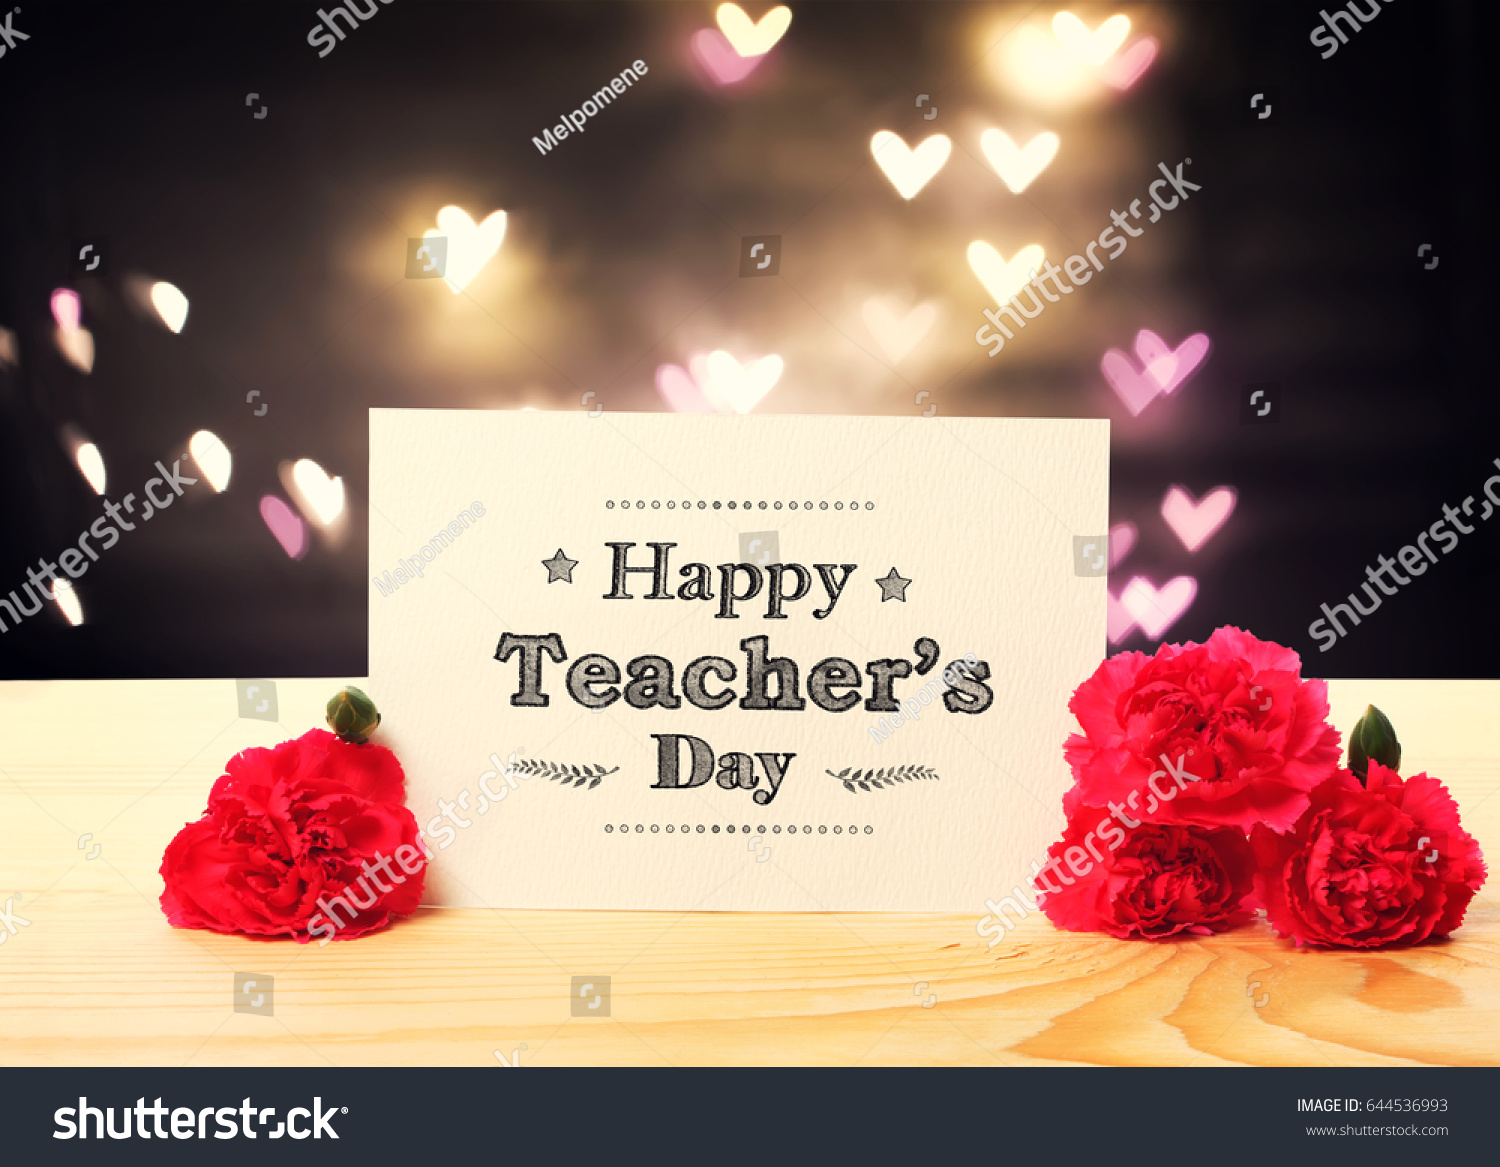 Teachers day message card carnation flowers stock photo 644536993 teachers day message card with carnation flowers and heart shaped lights kristyandbryce Image collections